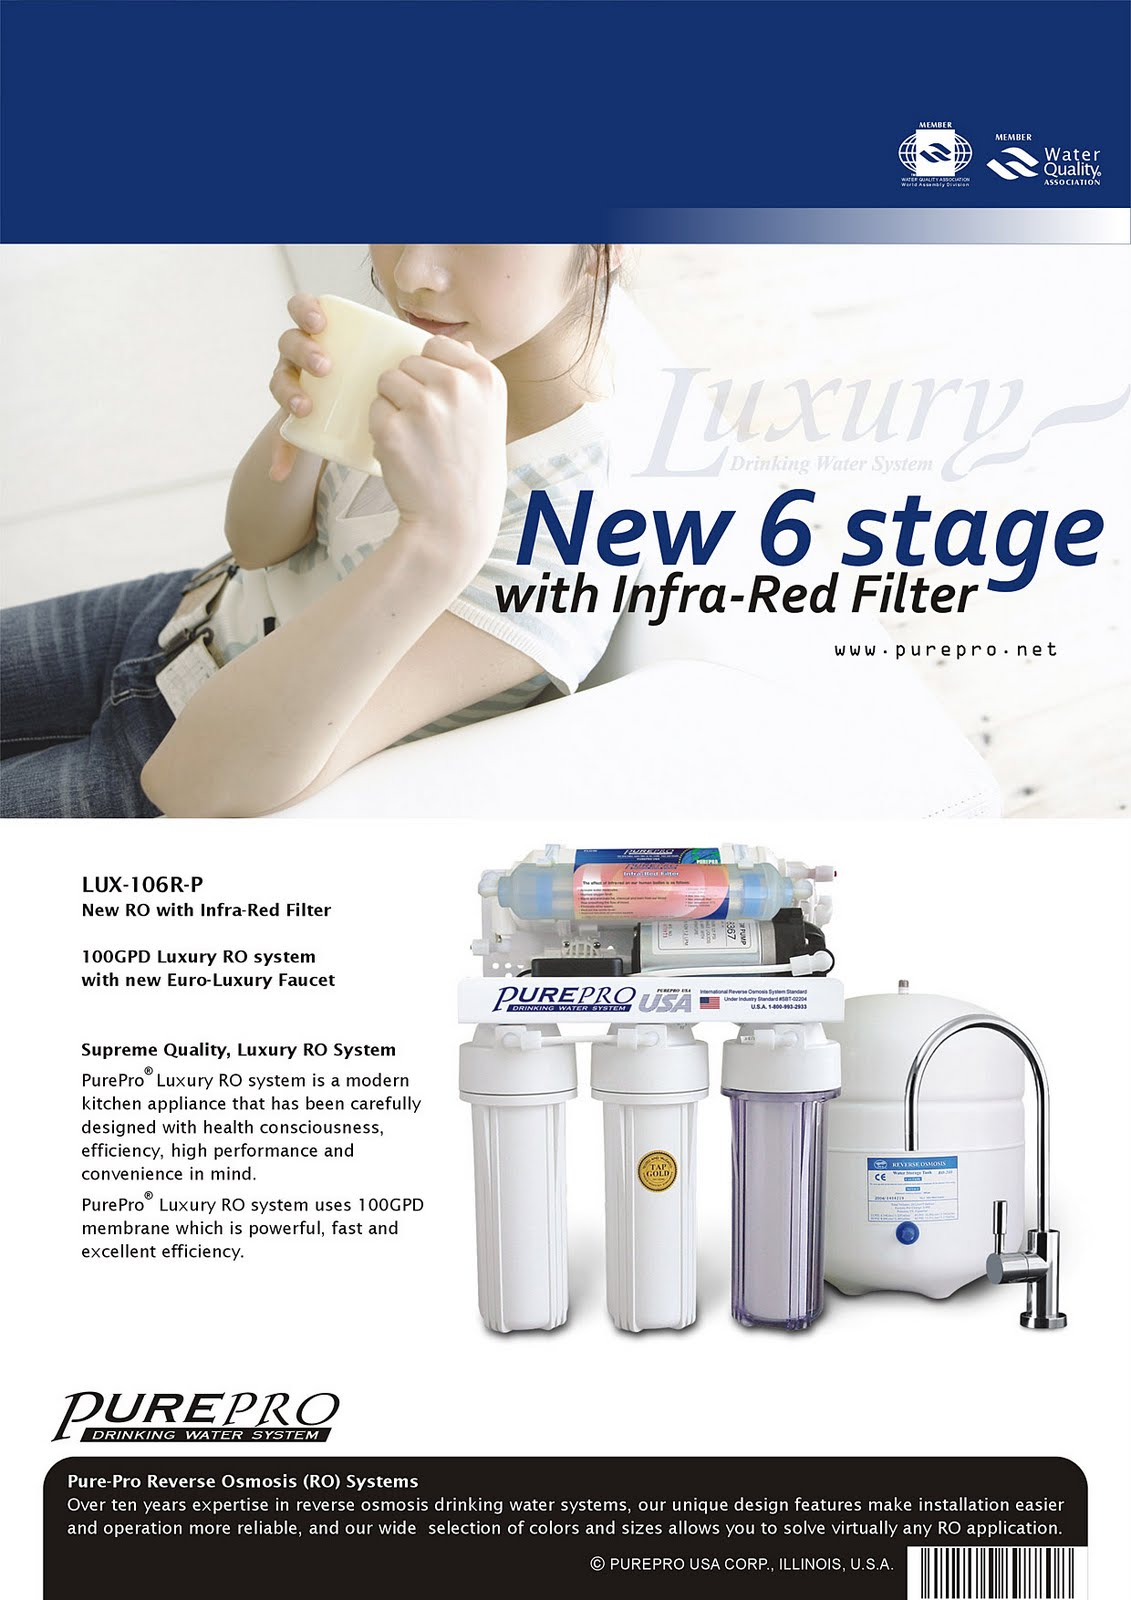 PurePro® LUX-106R-P Reverse Osmosis Water Filtration System